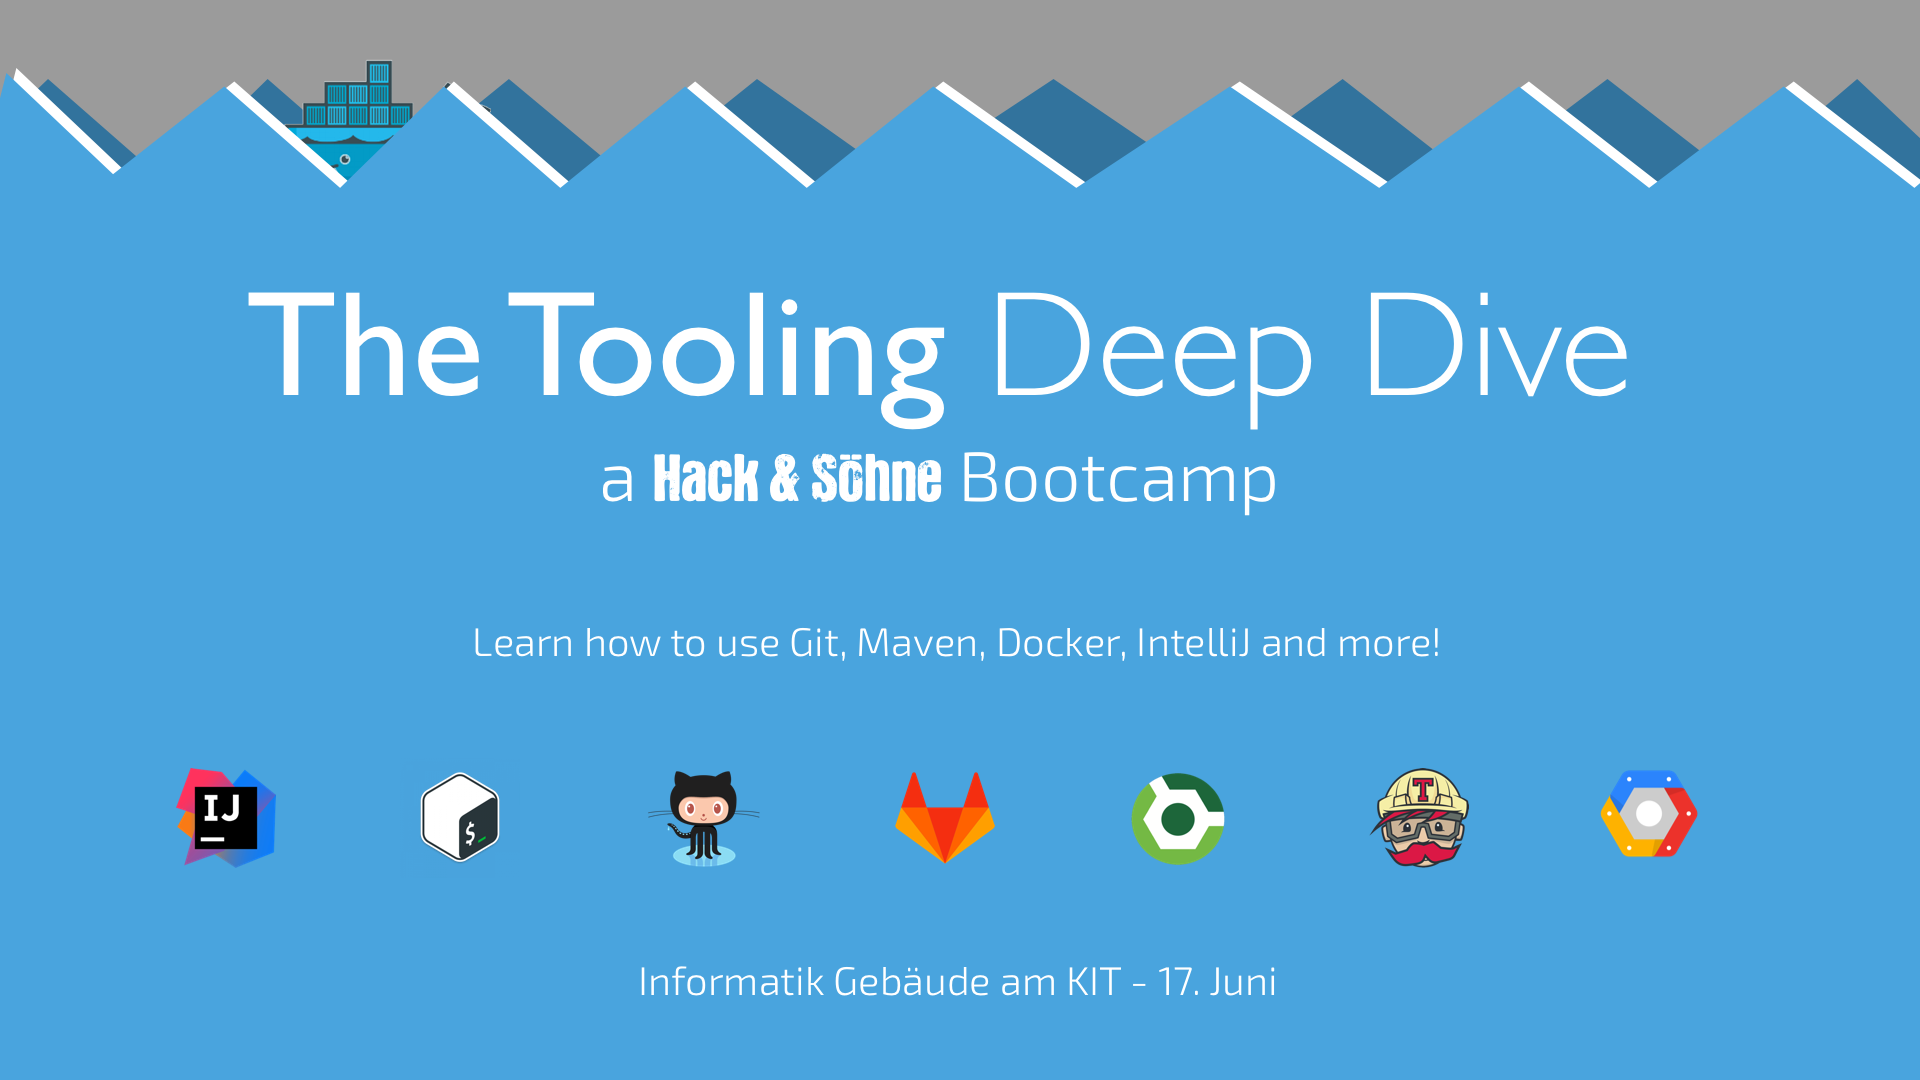 The Tooling Deep Dive